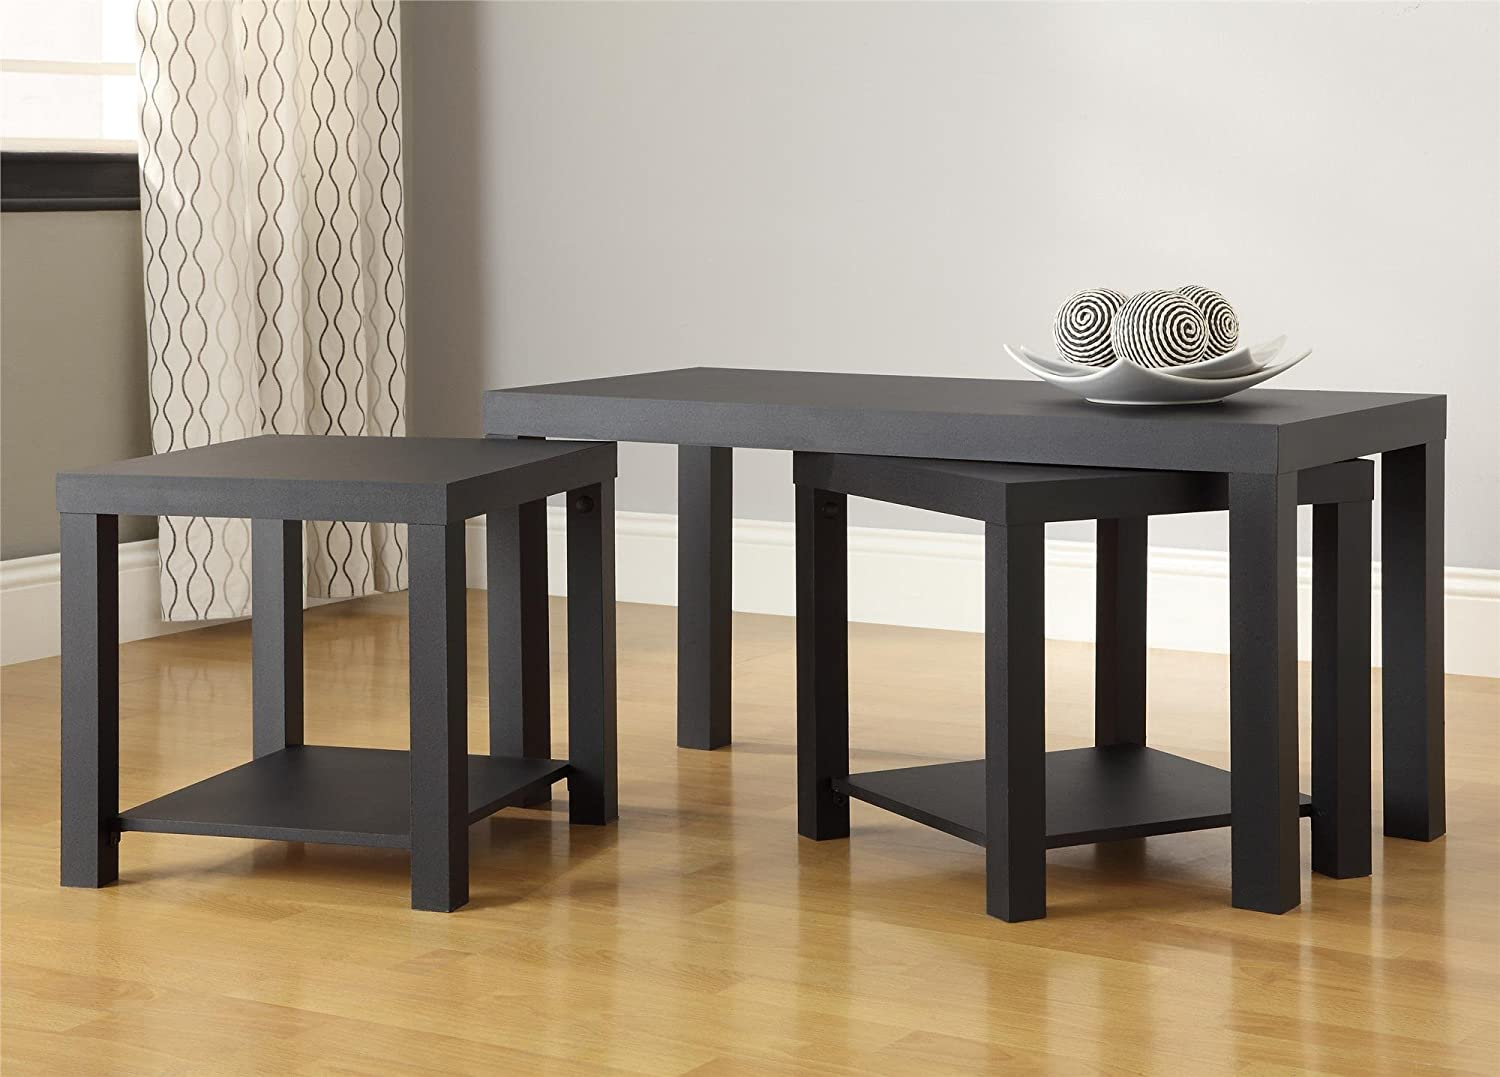 Amazon.com Ameriwood Home Holly Bay Coffee Table and End Table Set Black Kitchen \u0026 Dining & Amazon.com: Ameriwood Home Holly Bay Coffee Table and End Table ...